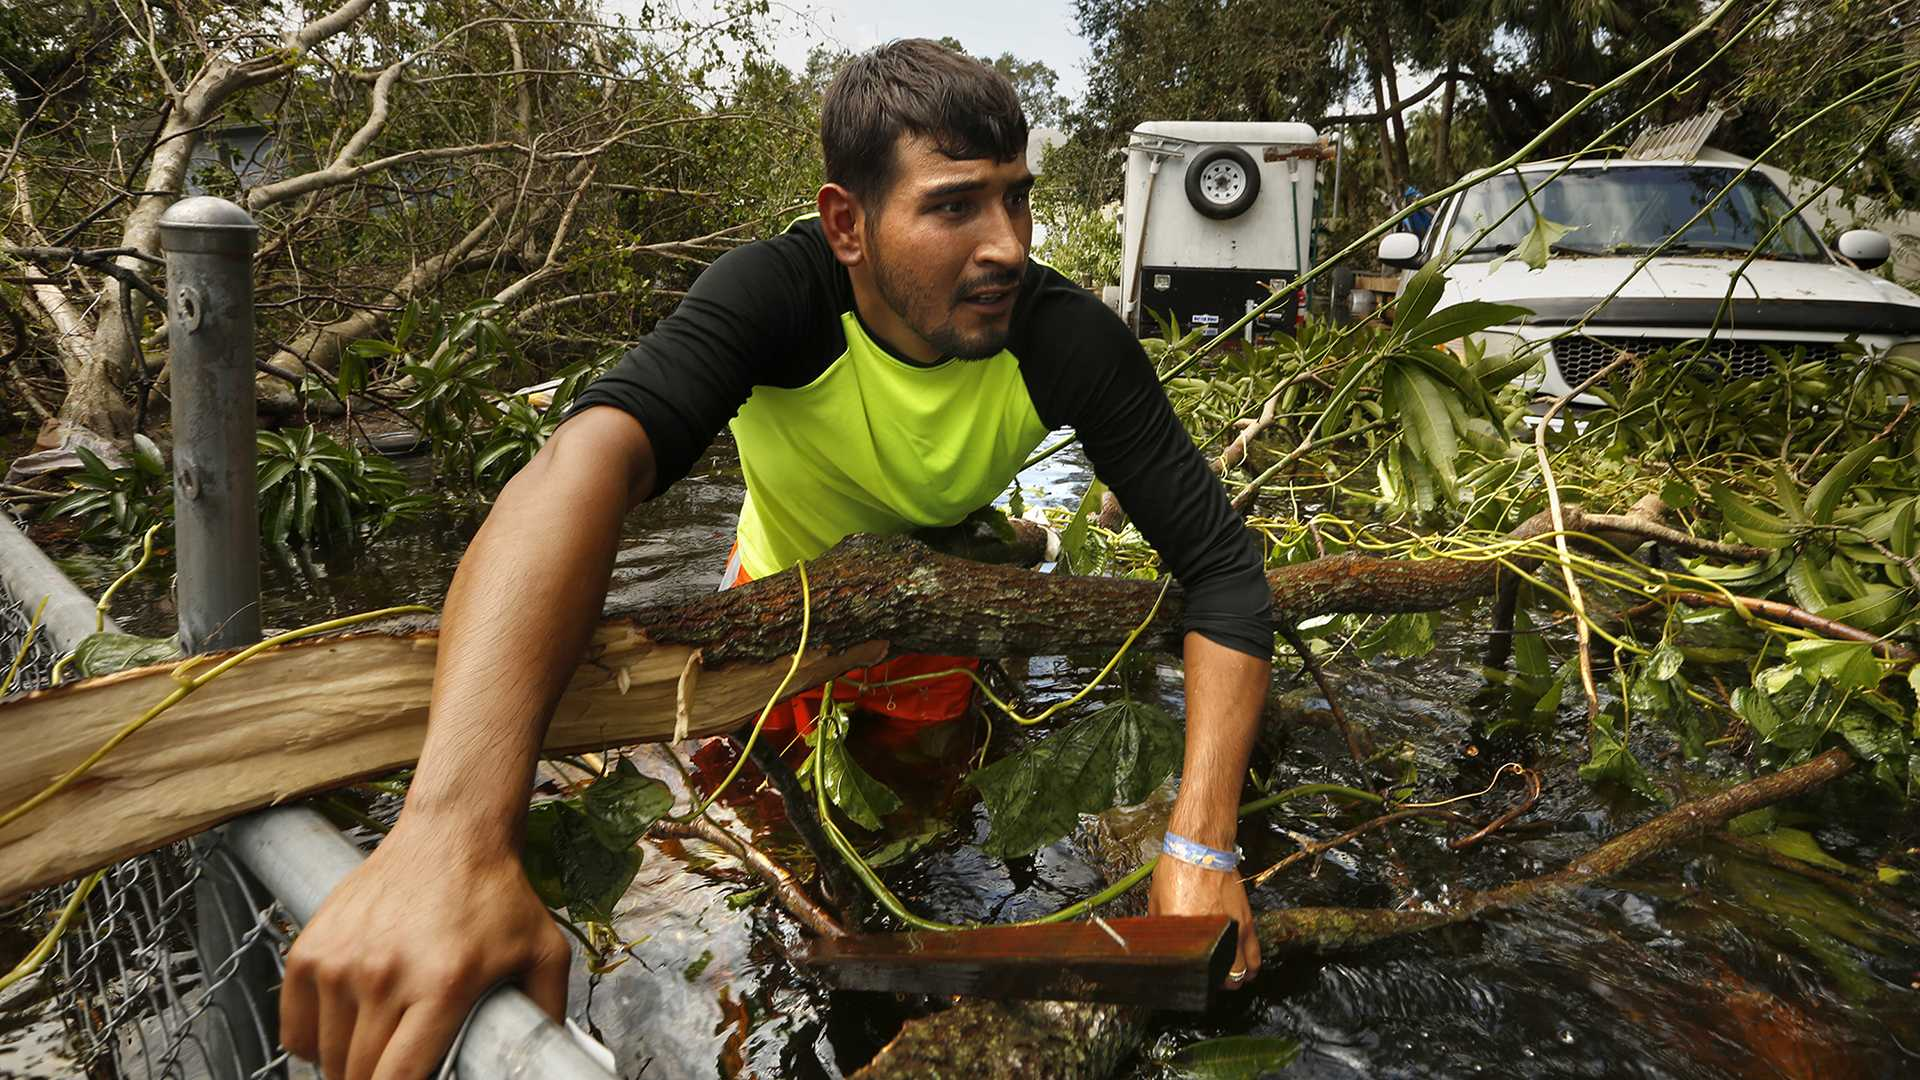 Israel Alvarado, 25, tries to open the yard fence blocked by fallen tree branches so that he can retrieve a generator from the property. In Bonita Springs, Fla., floodwaters reached waist deep in some areas, flooding homes and cars. Some residents returned on Monday, Sept. 11, 2017 to retrieve belongings. (Carolyn Cole/Los Angeles Times/TNS)